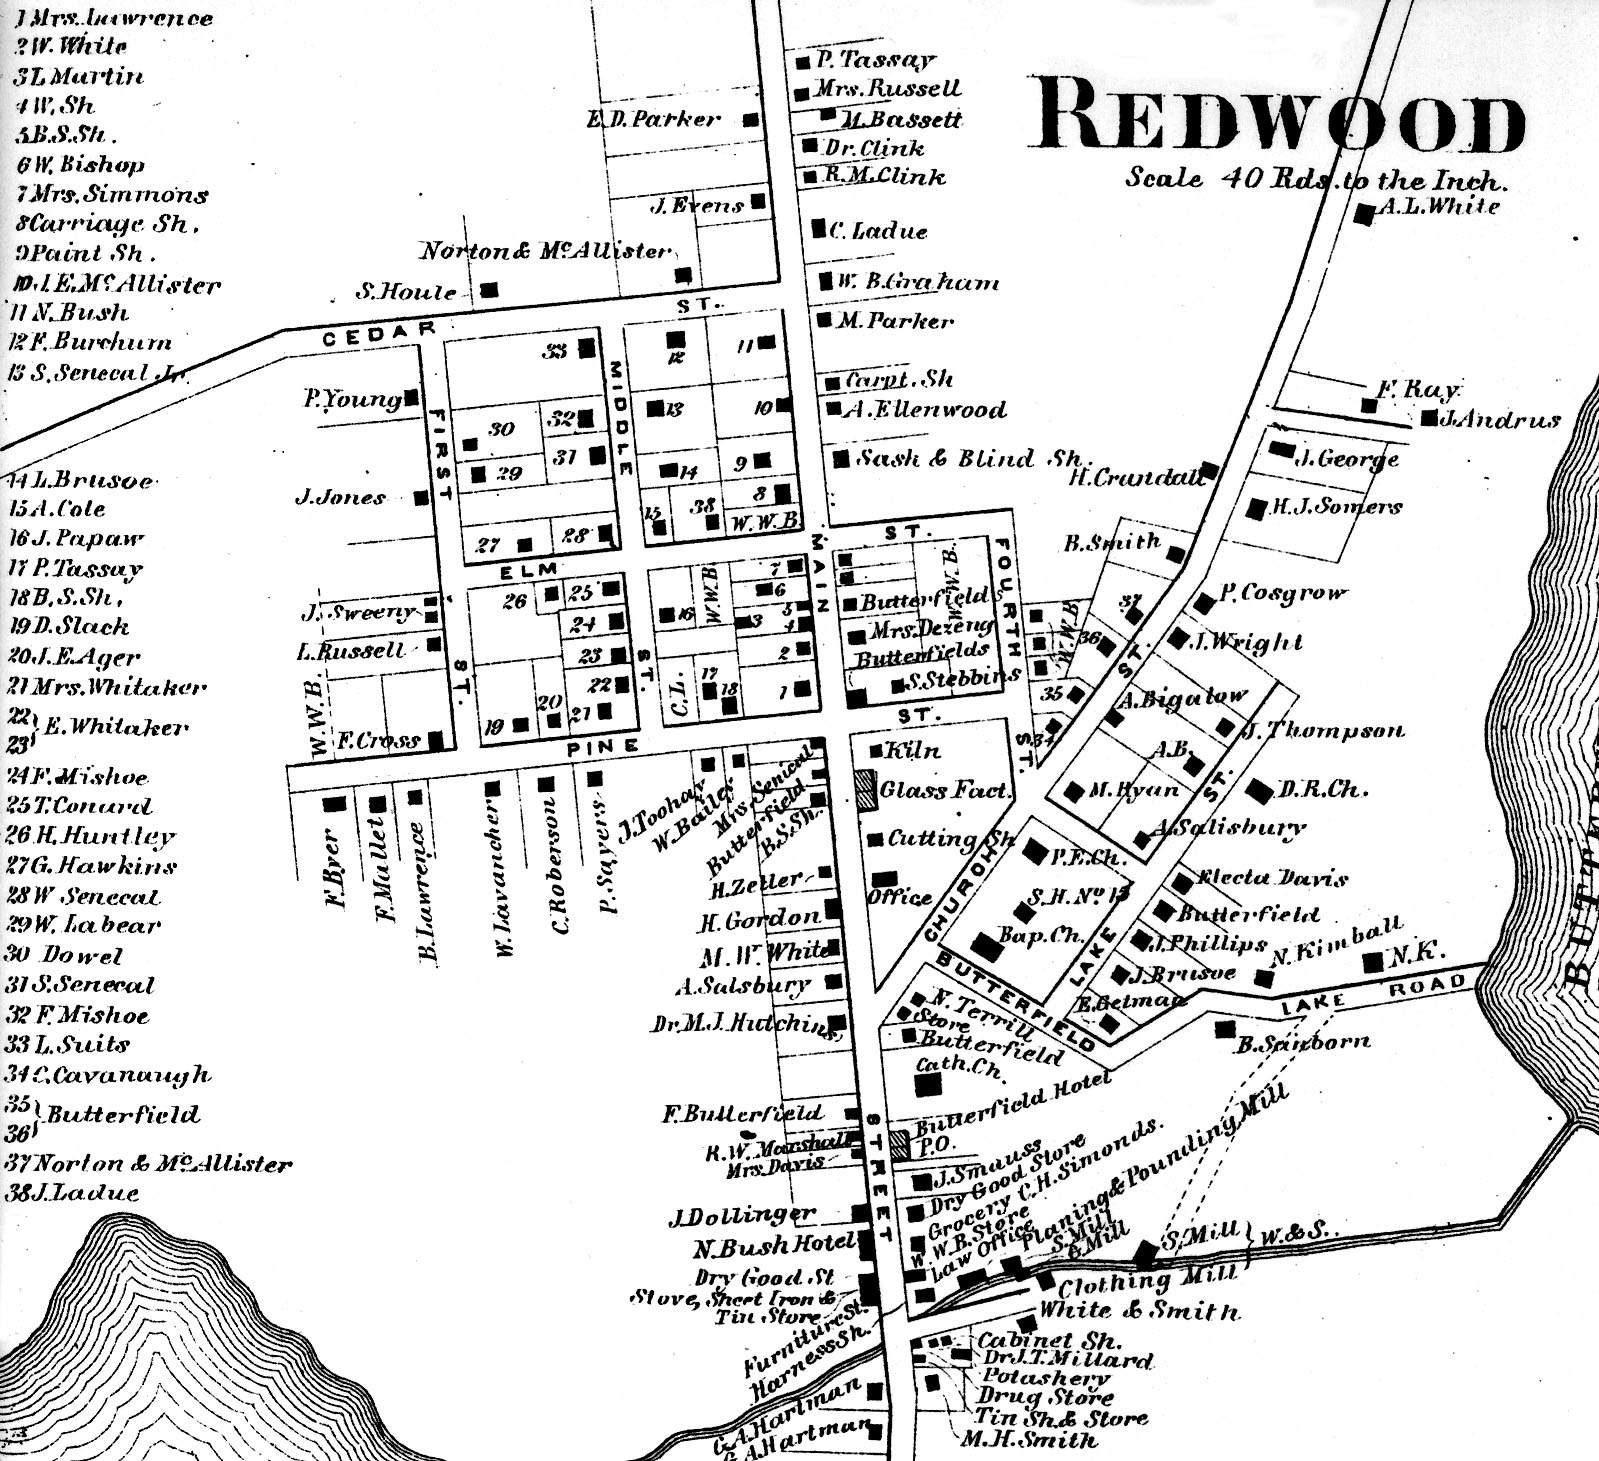 1864 Map of Redwood